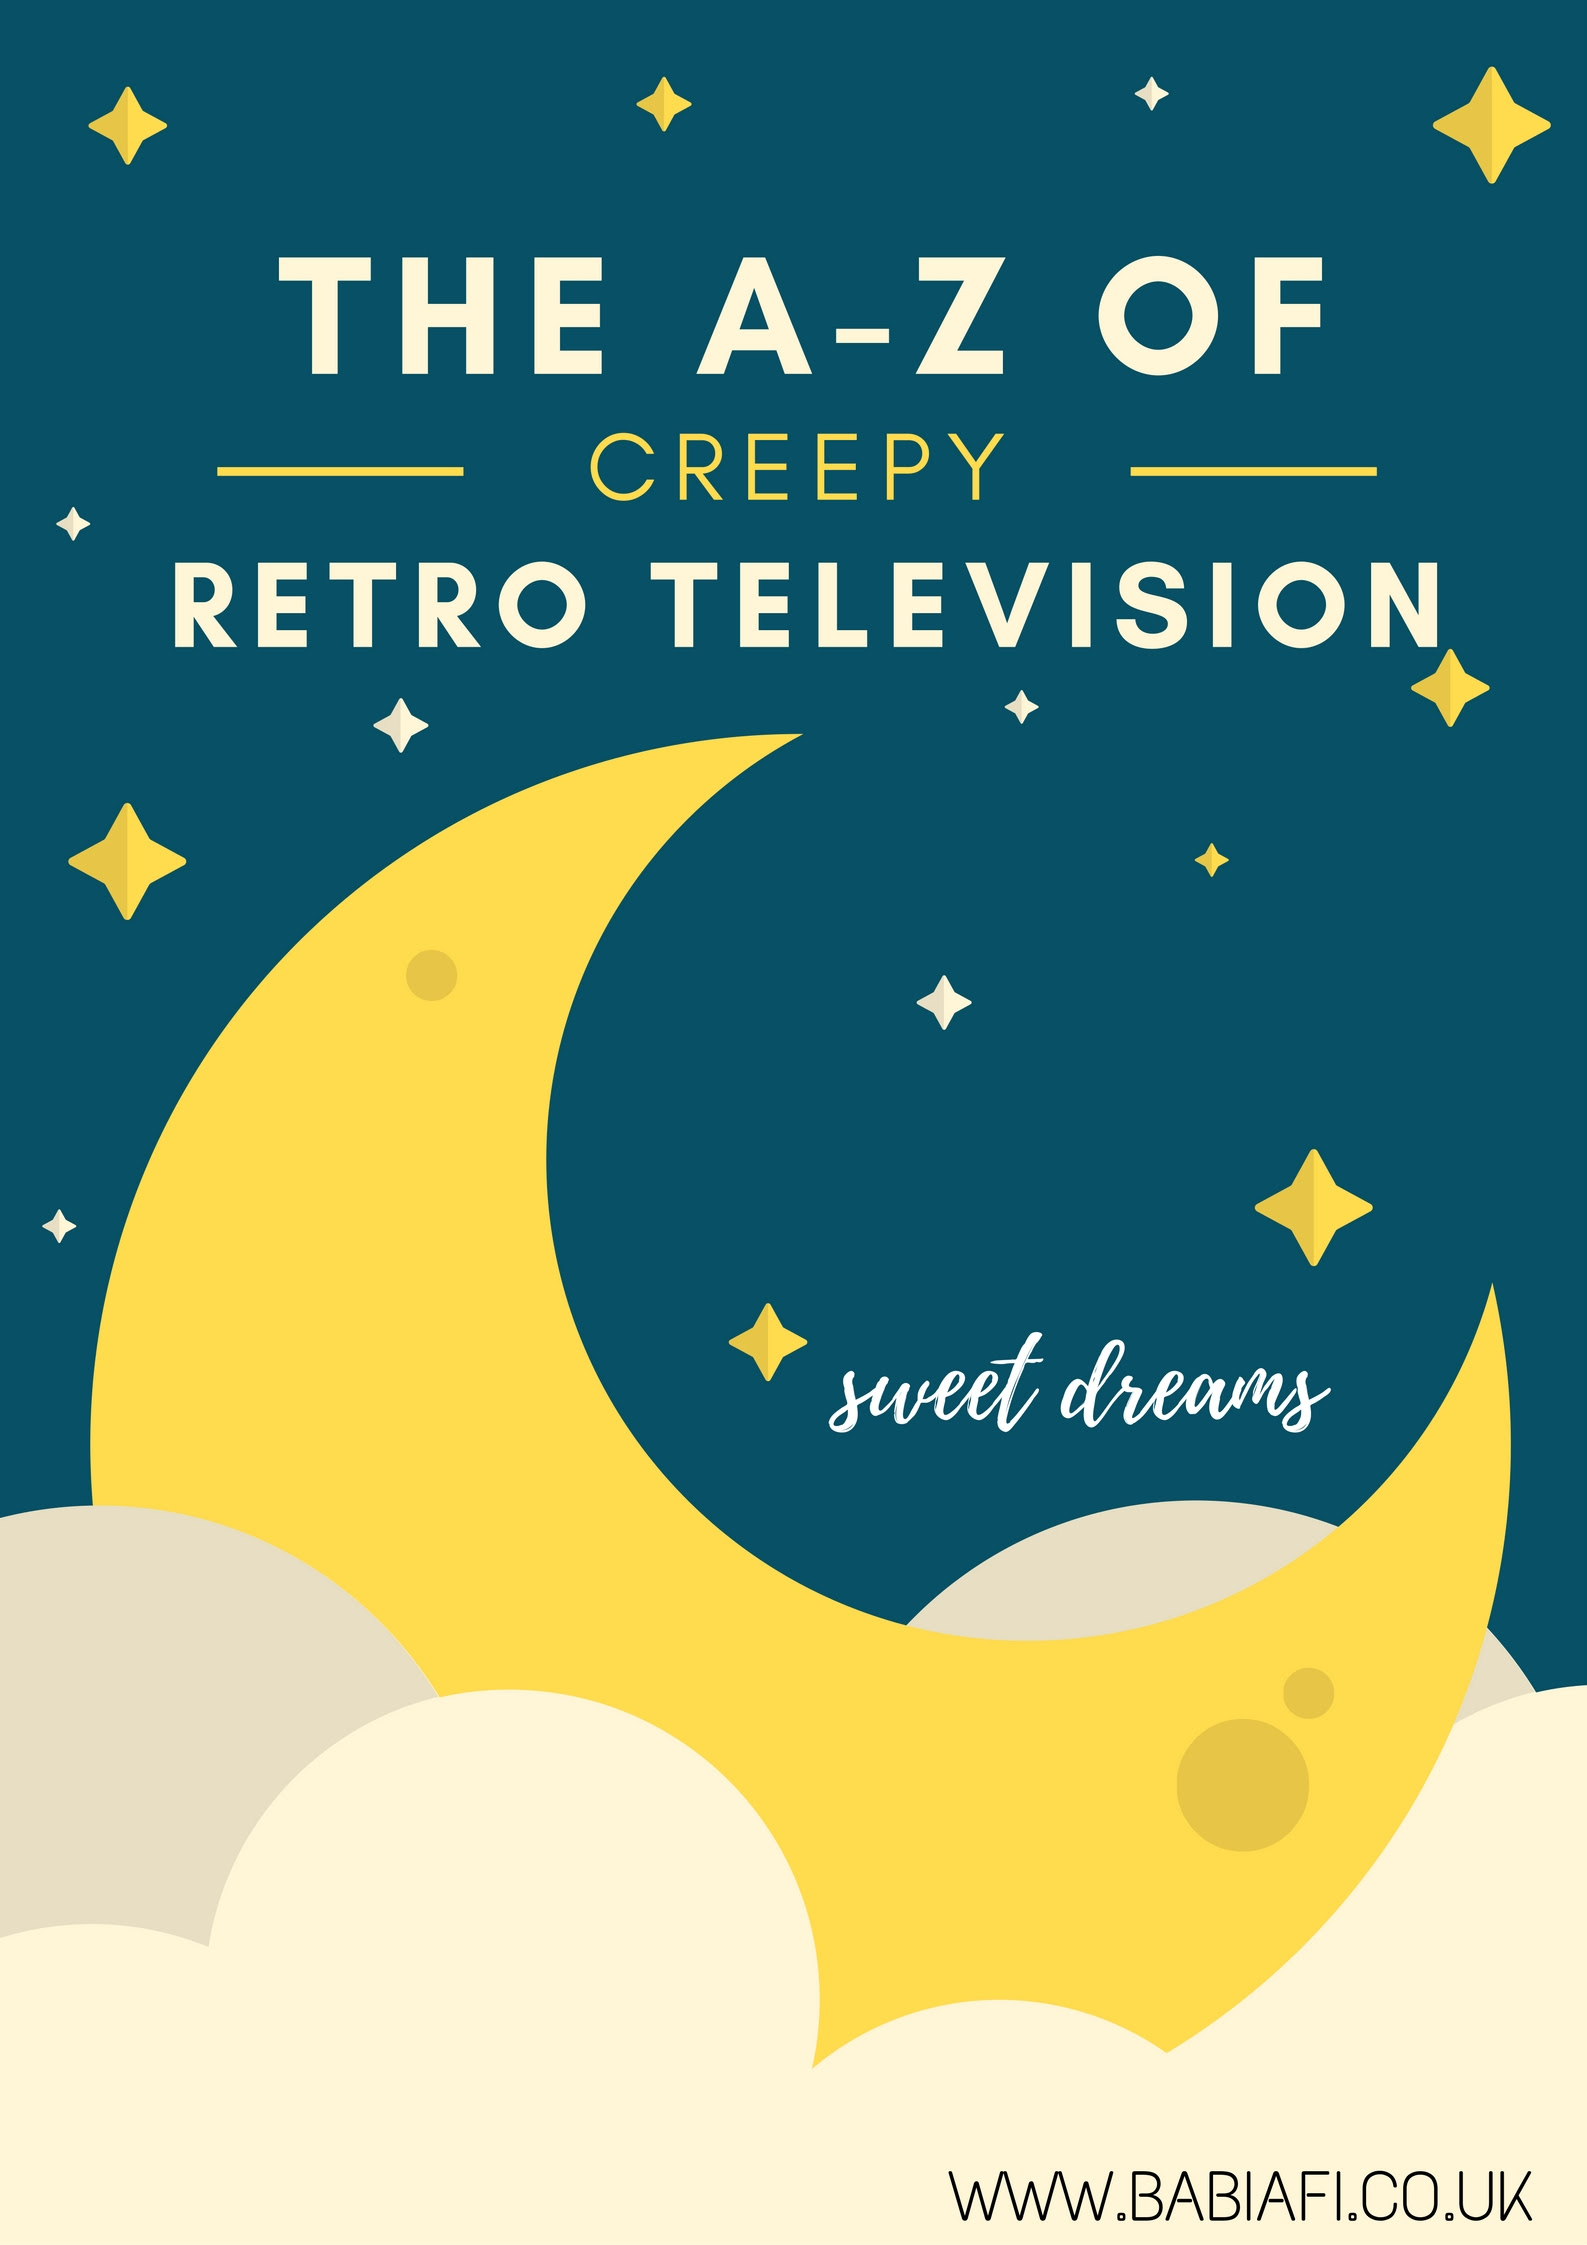 The A-Z of Creepy Retro Television